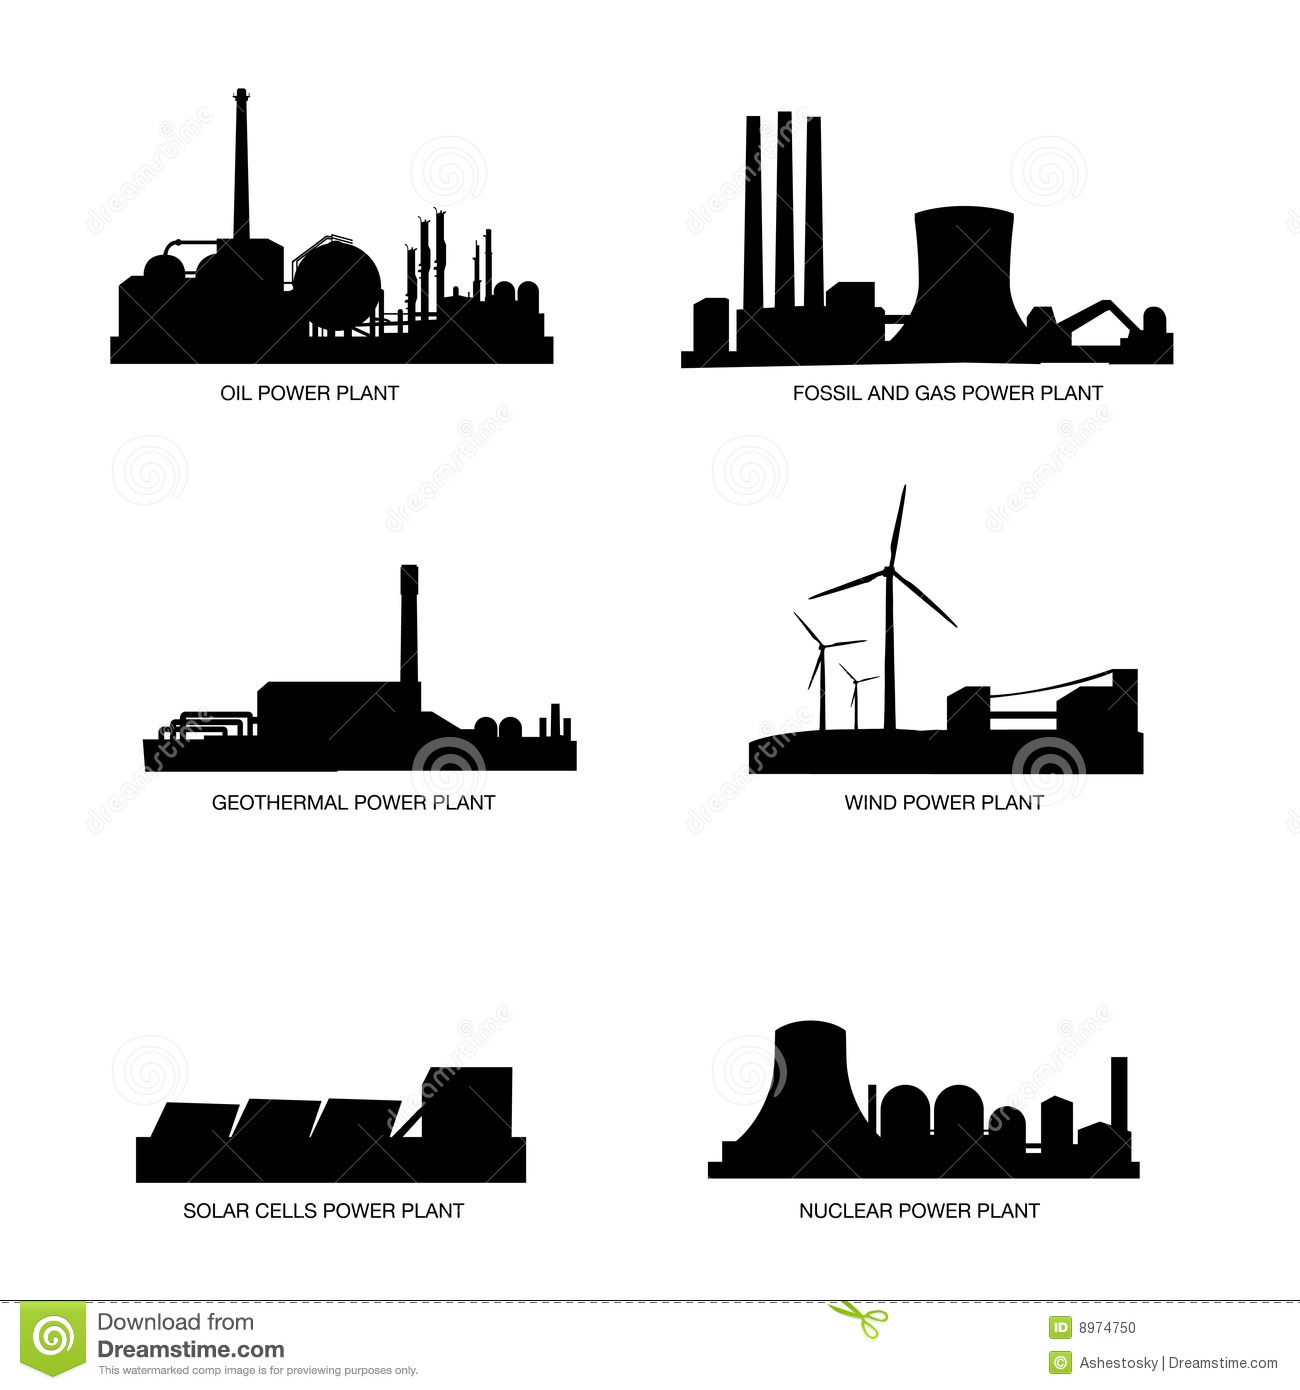 Download Natural Gas Power Plant Clipart-Download Natural Gas Power Plant Clipart-5